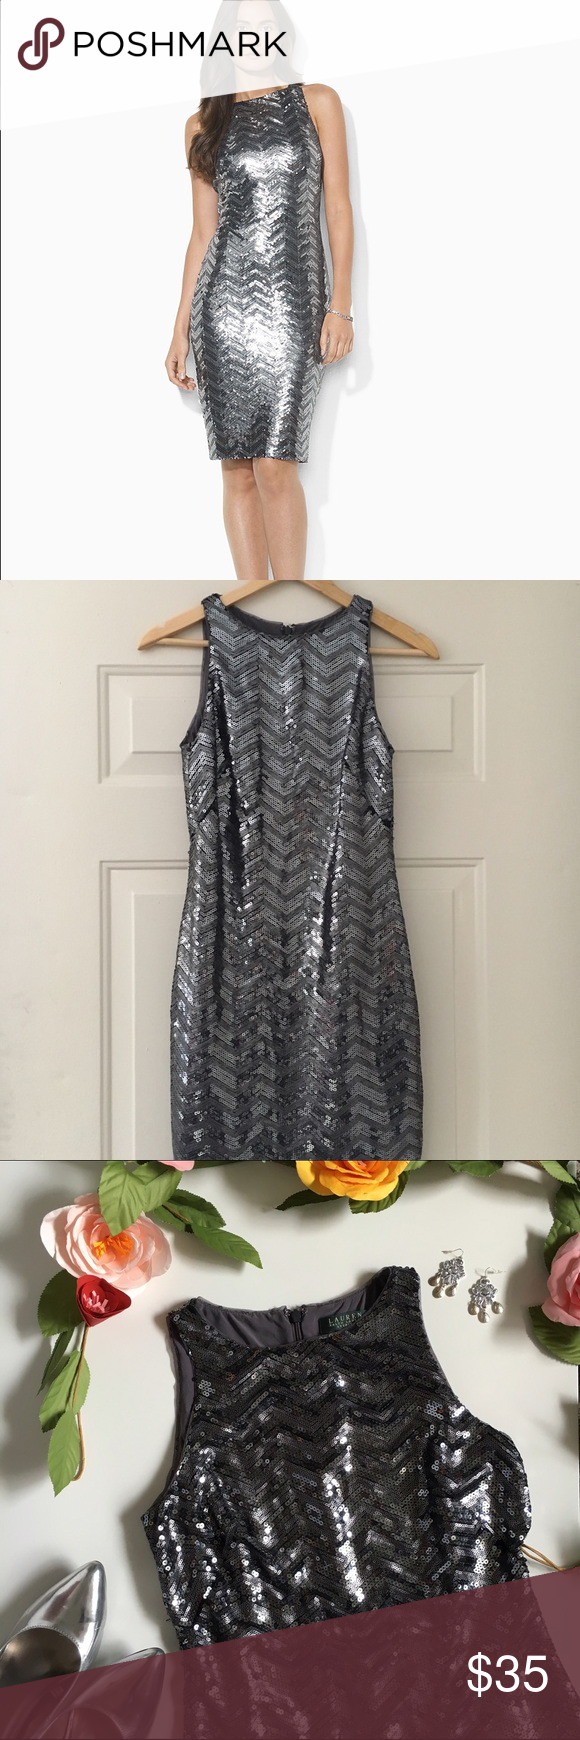 Ralph Lauren Evening Sequin Dress Gorgeous all-over sequin dress by Ralph Lauren. Features a subtle chevron pattern. Hidden back zipper. There are some loose sequins on the side of the dress near the seams, as pictured. The list price reflects this. No other flaws noted, excellent used condition. Ralph Lauren Dresses Midi